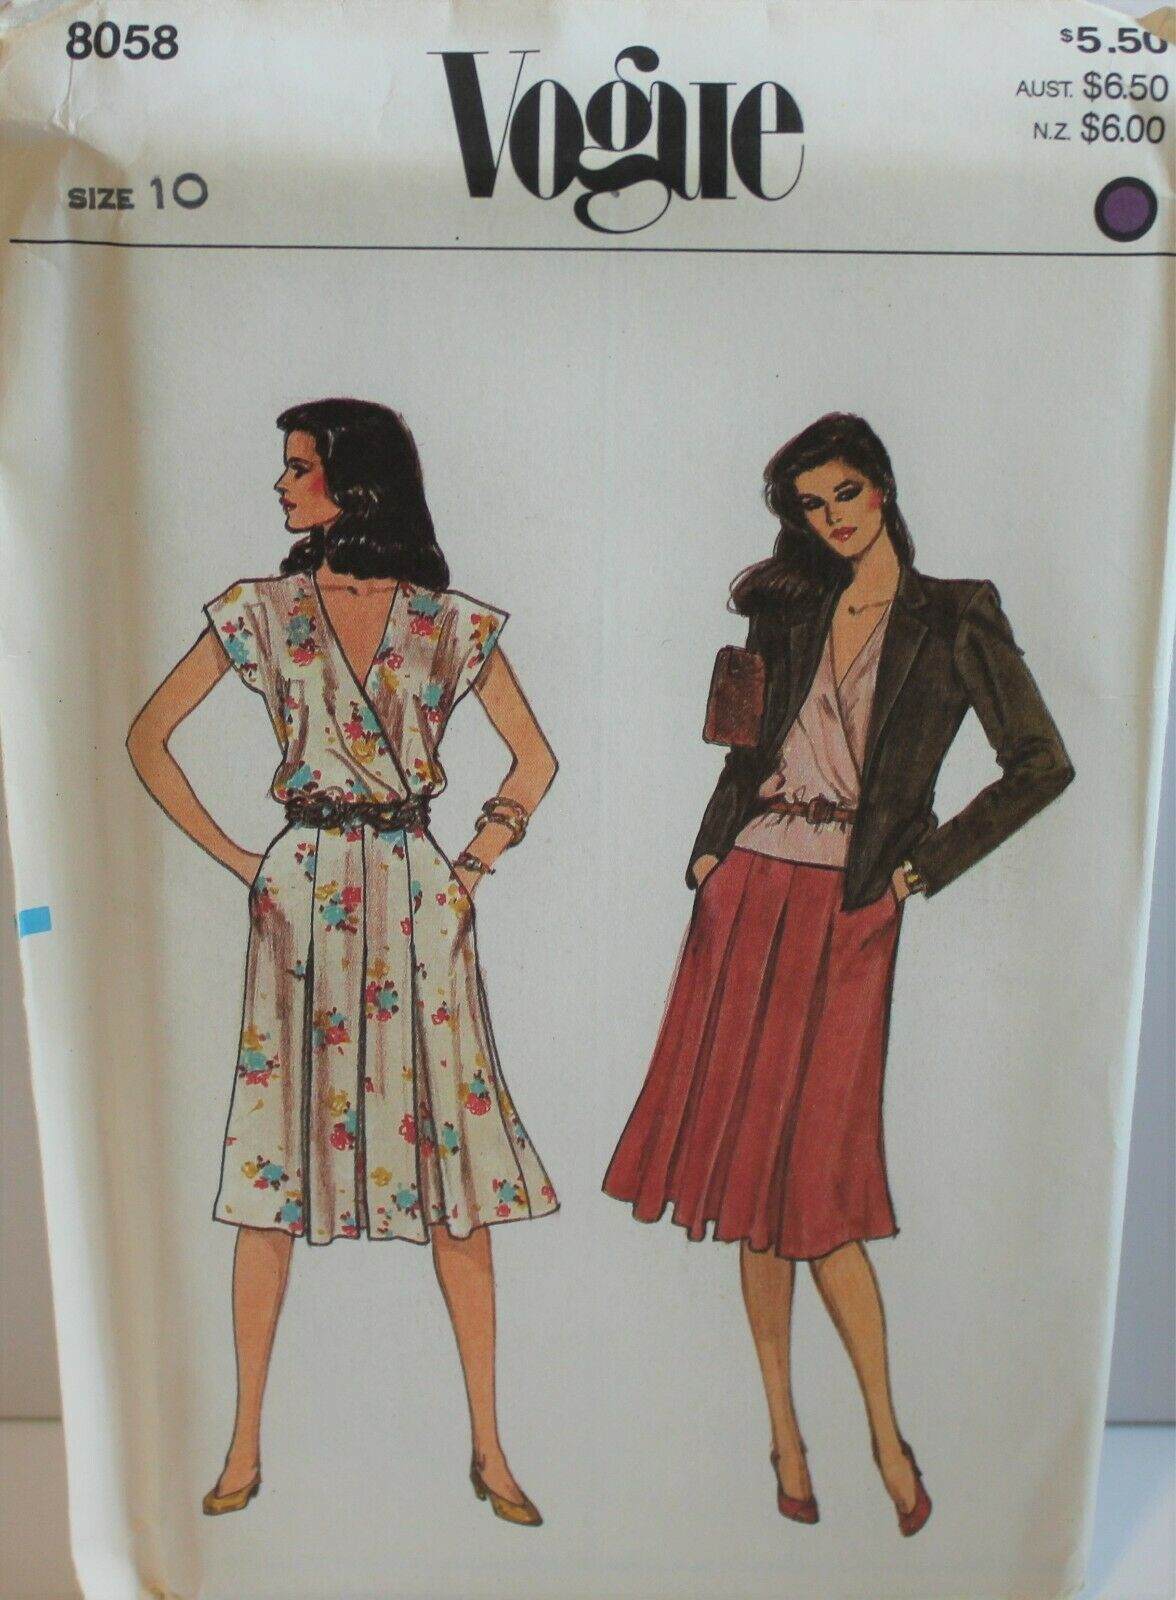 Primary image for Vogue Sewing Pattern 8058 Misses Jacket Blouse Skirt Size 10